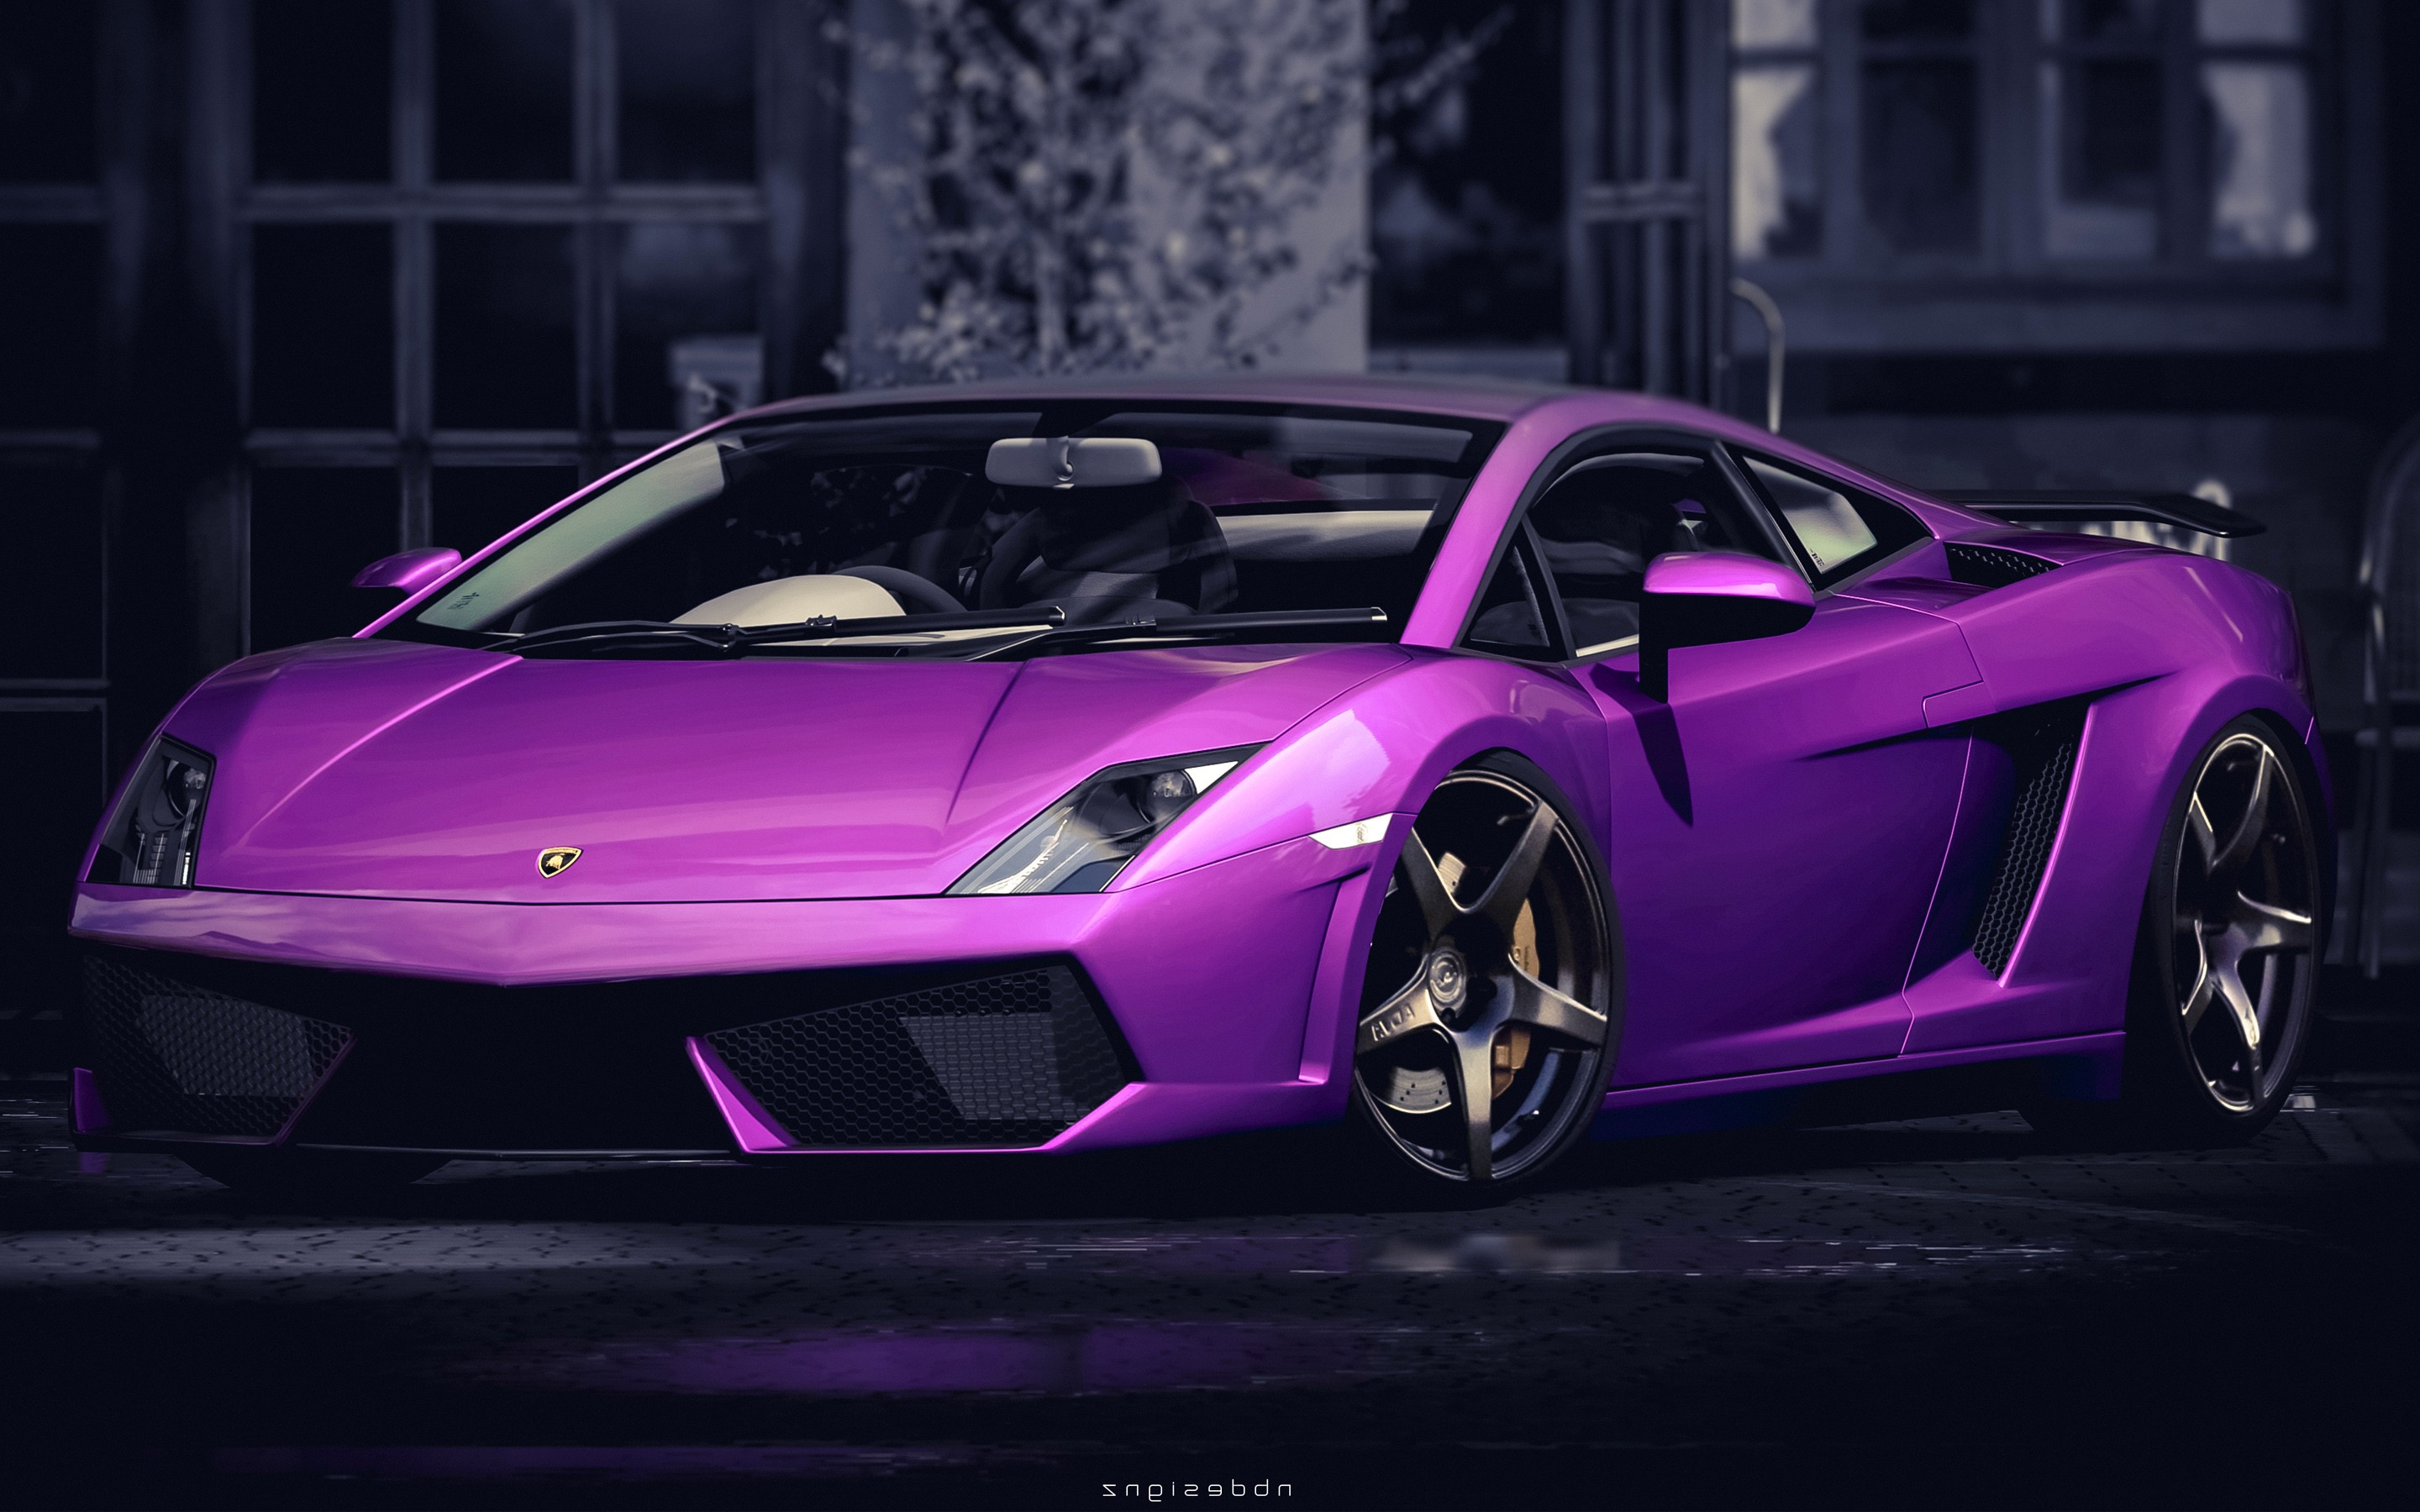 Lamborghini Gallardo Purple HD Cars 4k Wallpapers